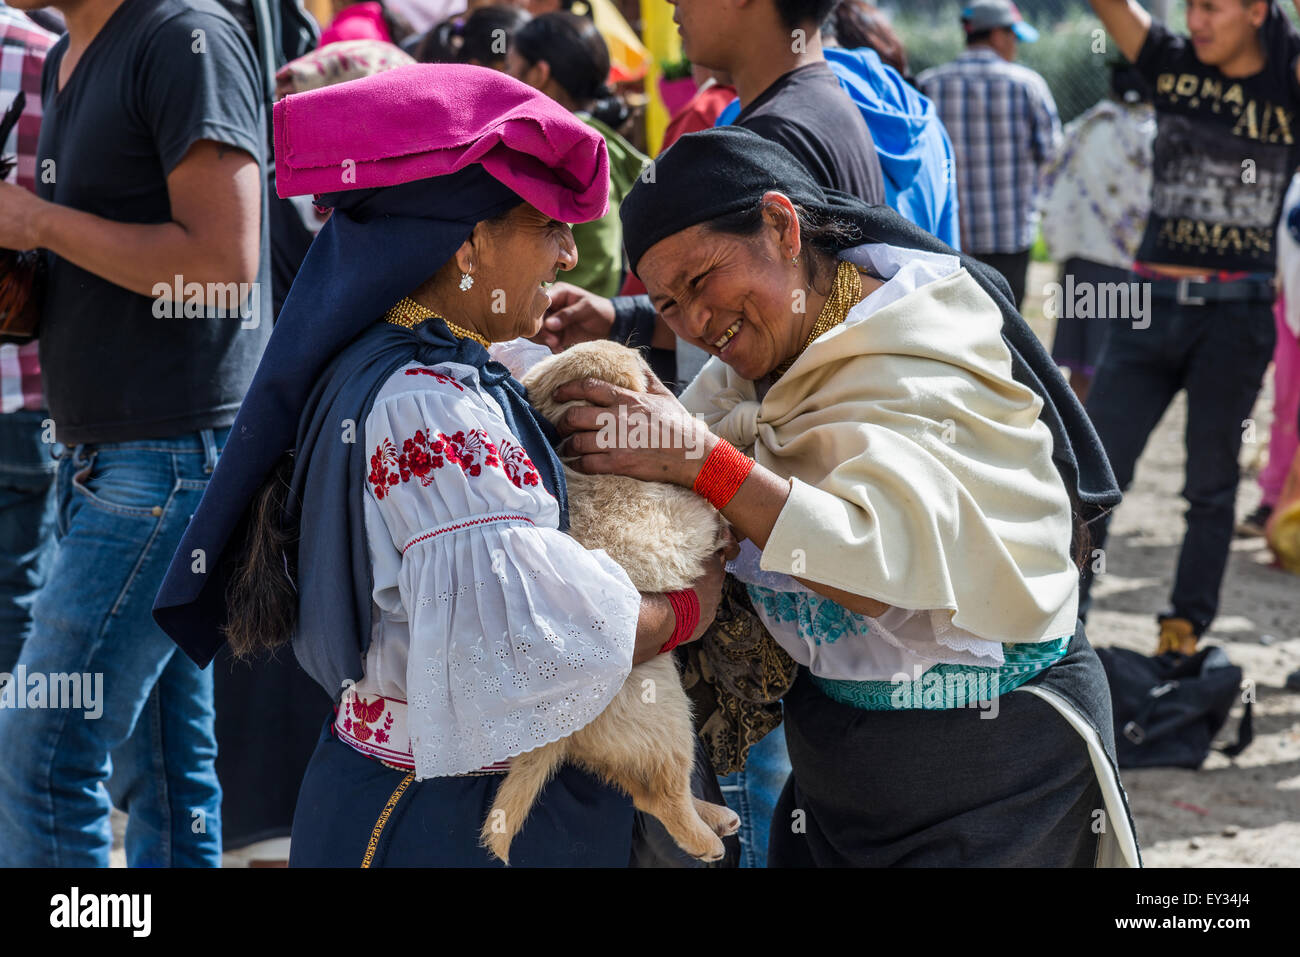 A native woman pets a puppy held by another old lady at local market. Otavalo, Ecuador. - Stock Image